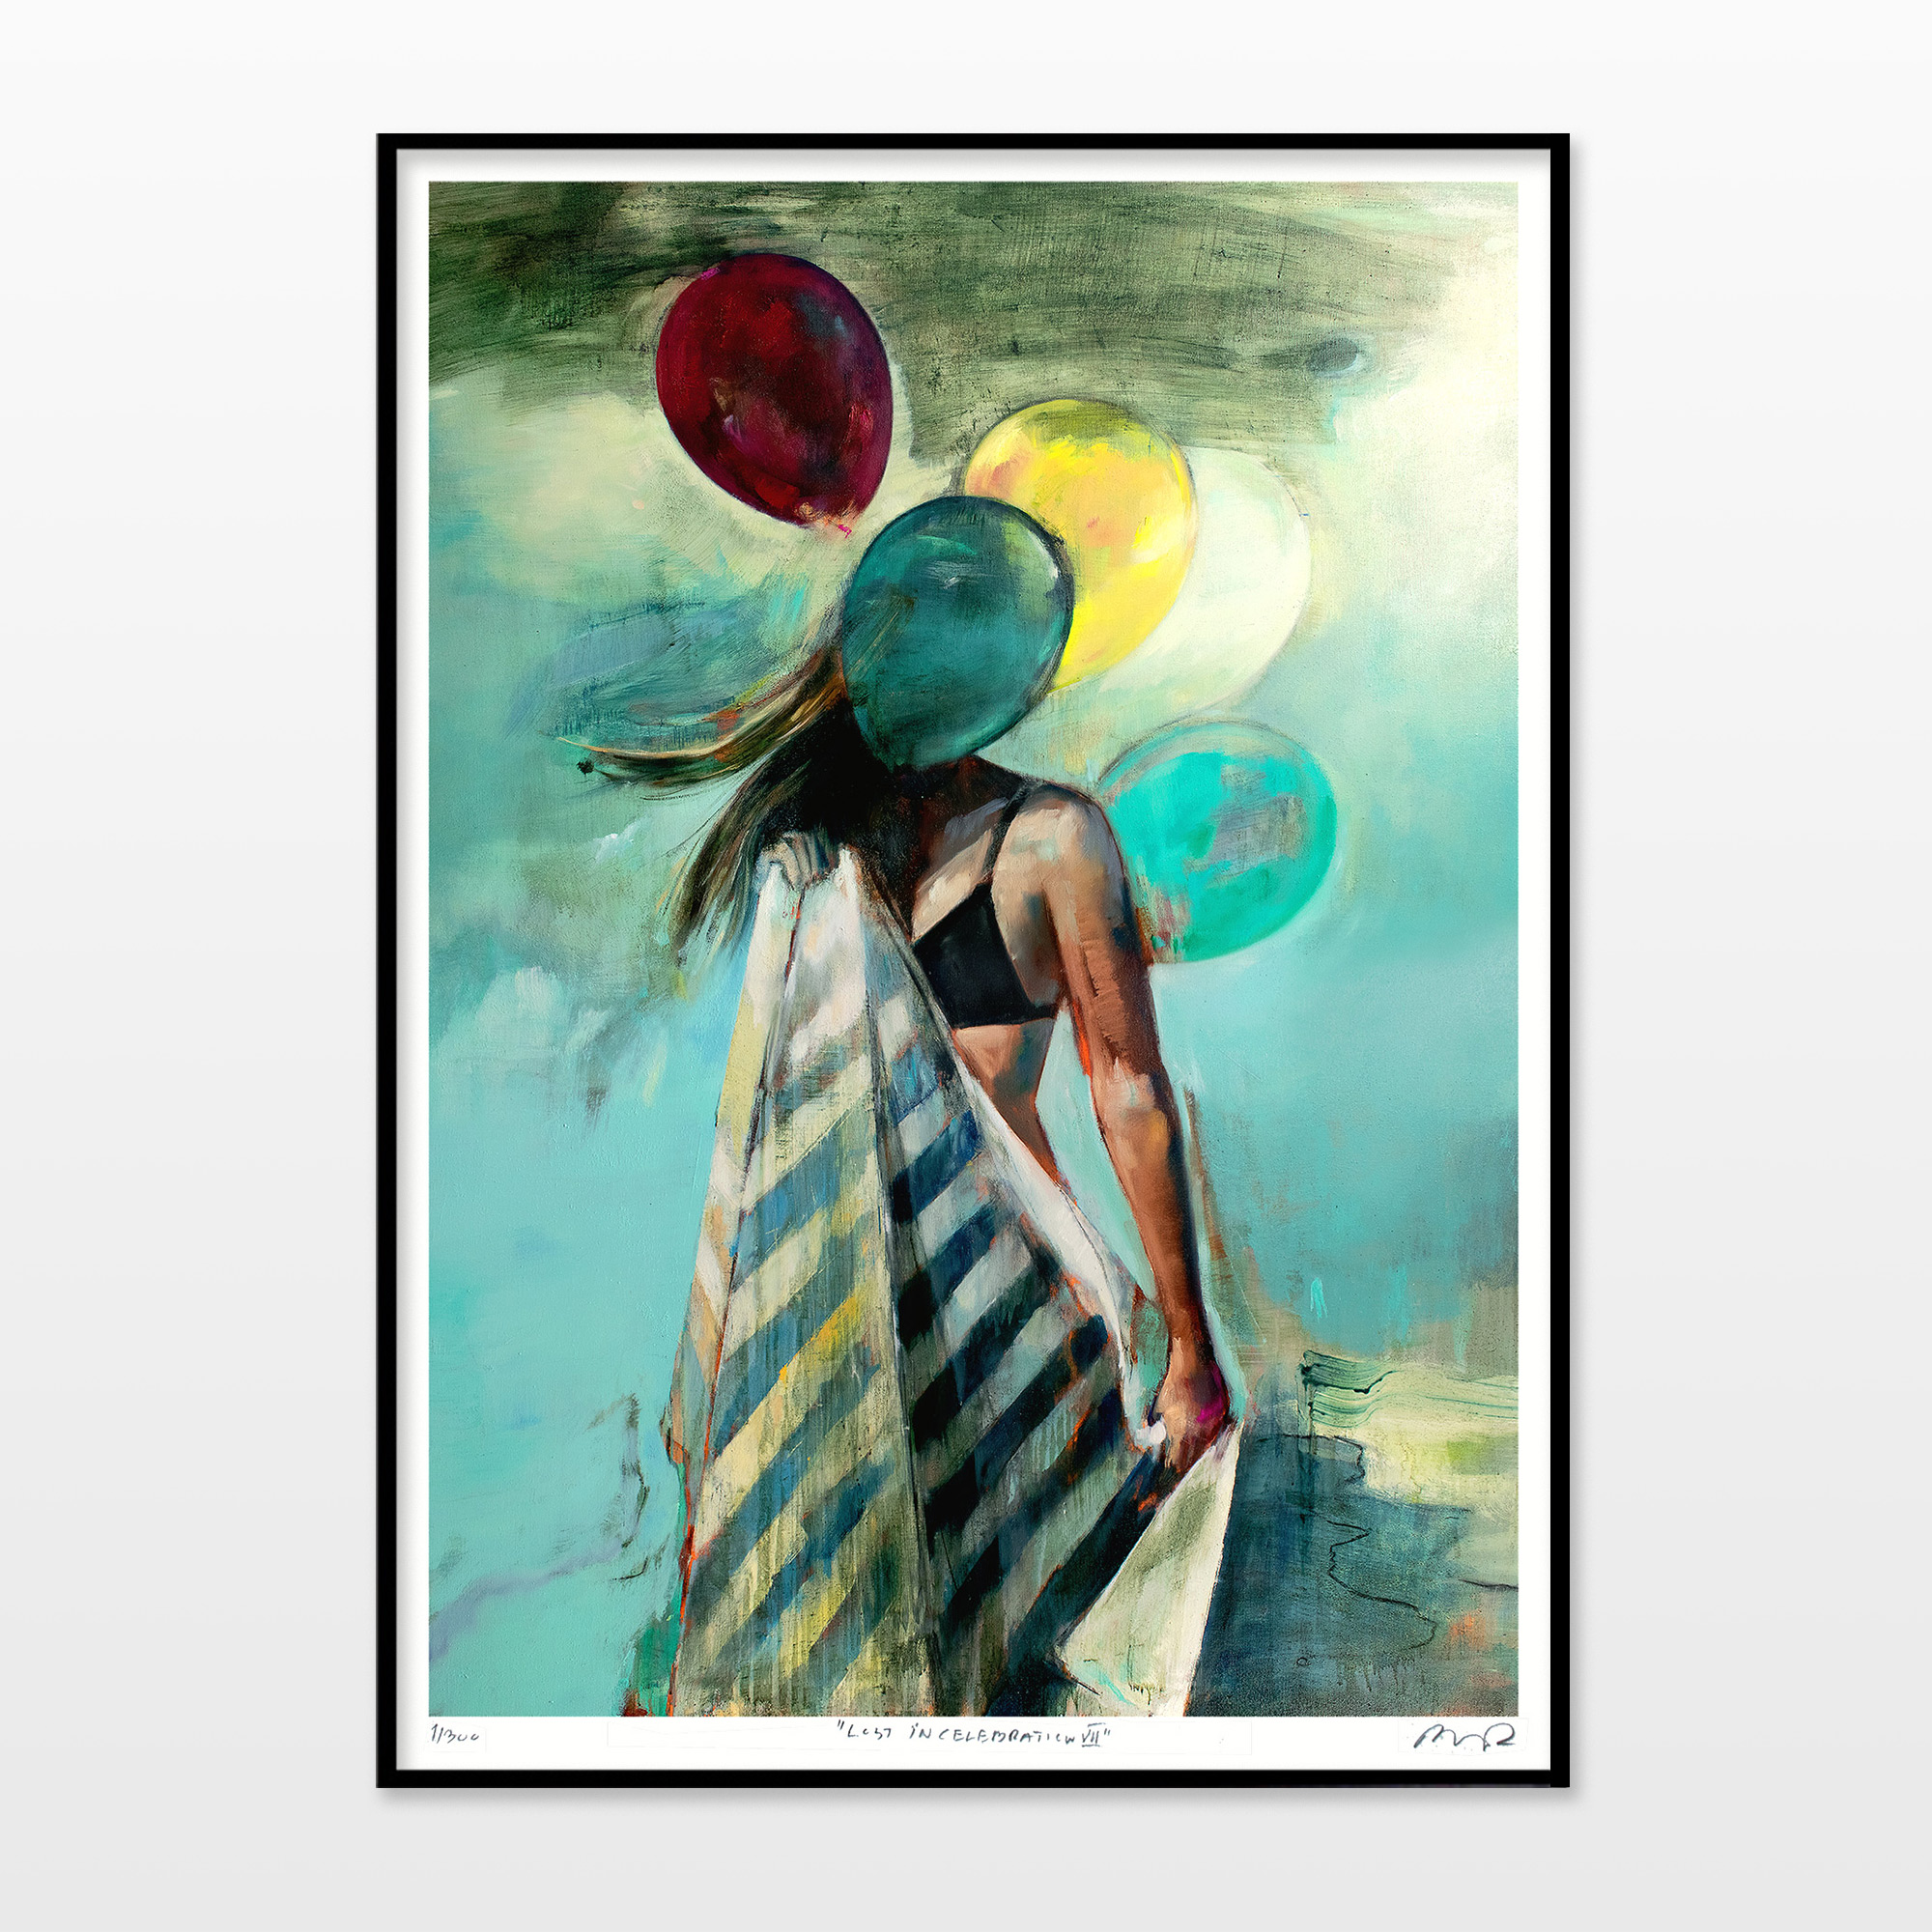 posters-prints, aesthetic, colorful, figurative, graphical, illustrative, landscape, portraiture, bodies, nature, oceans, people, sky, blue, green, turquoise, yellow, ink, paper, beach, beautiful, danish, decorative, design, female, interior, interior-design, nordic, posters, pretty, scandinavien, summer, women, Buy original high quality art. Paintings, drawings, limited edition prints & posters by talented artists.